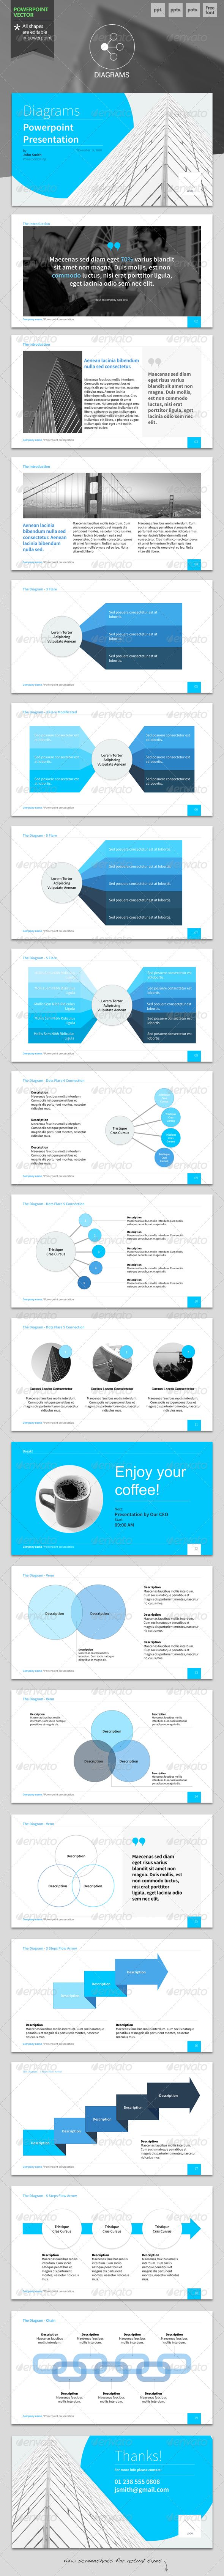 Diagrams - Powerpoint Template  #GraphicRiver